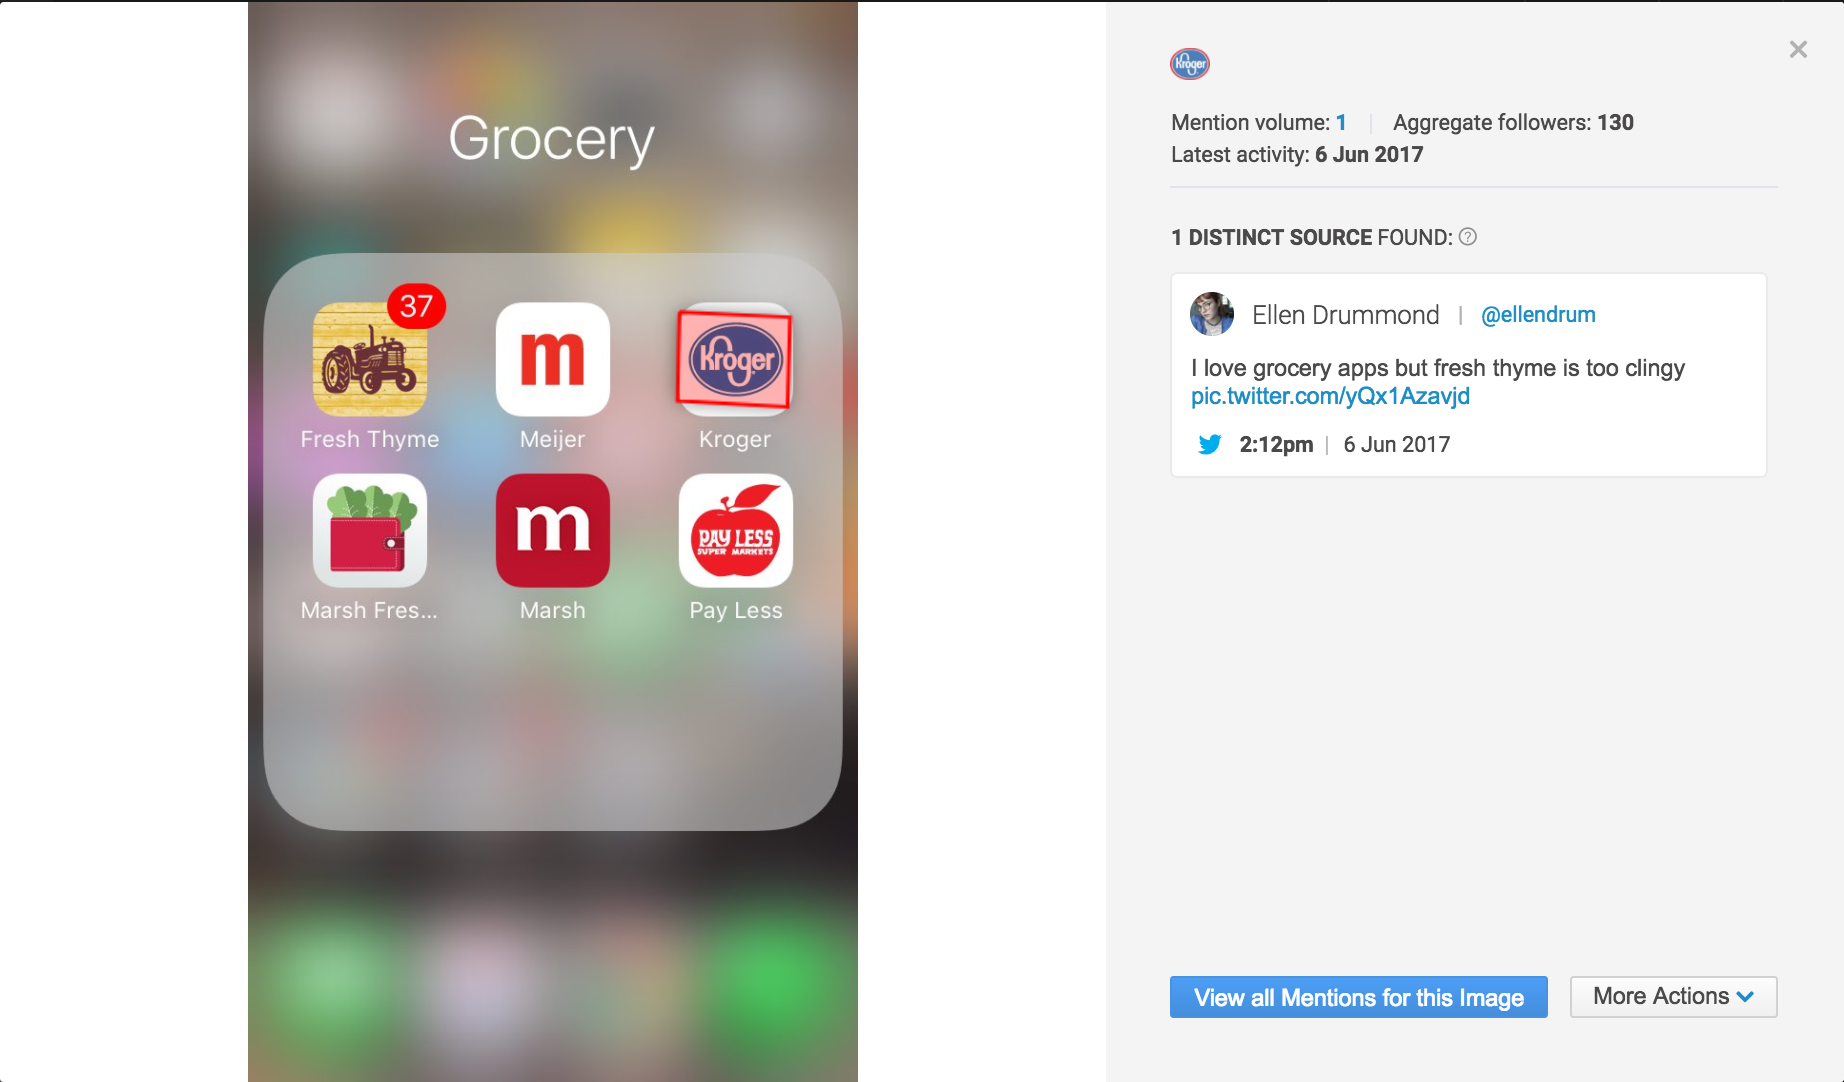 Brandwatch Image Analysis for Kroger